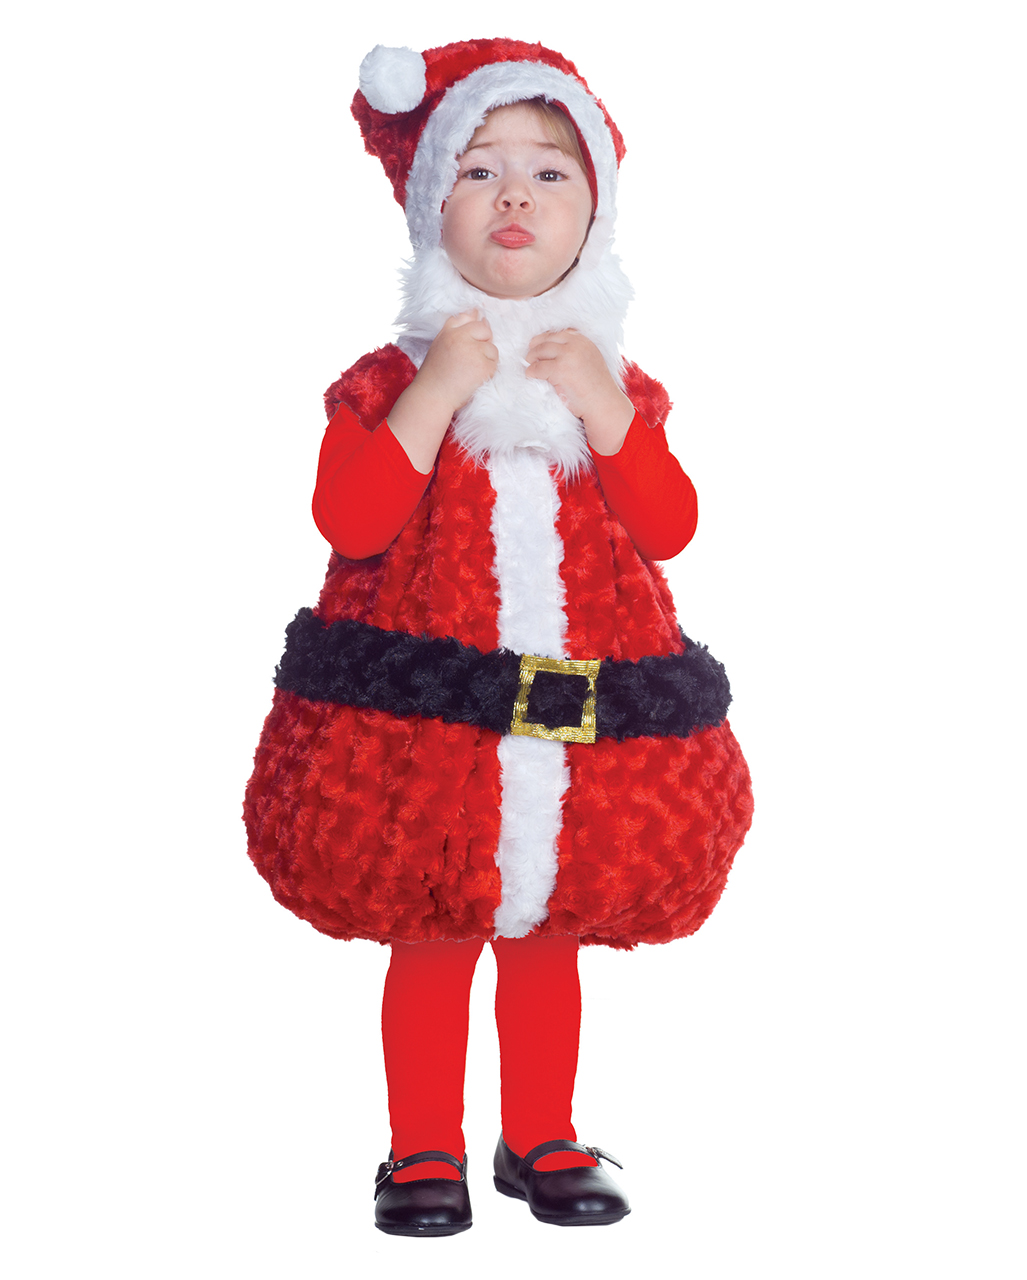 a407346ed Santa Baby Toddler Costume for Christmas party | horror-shop.com